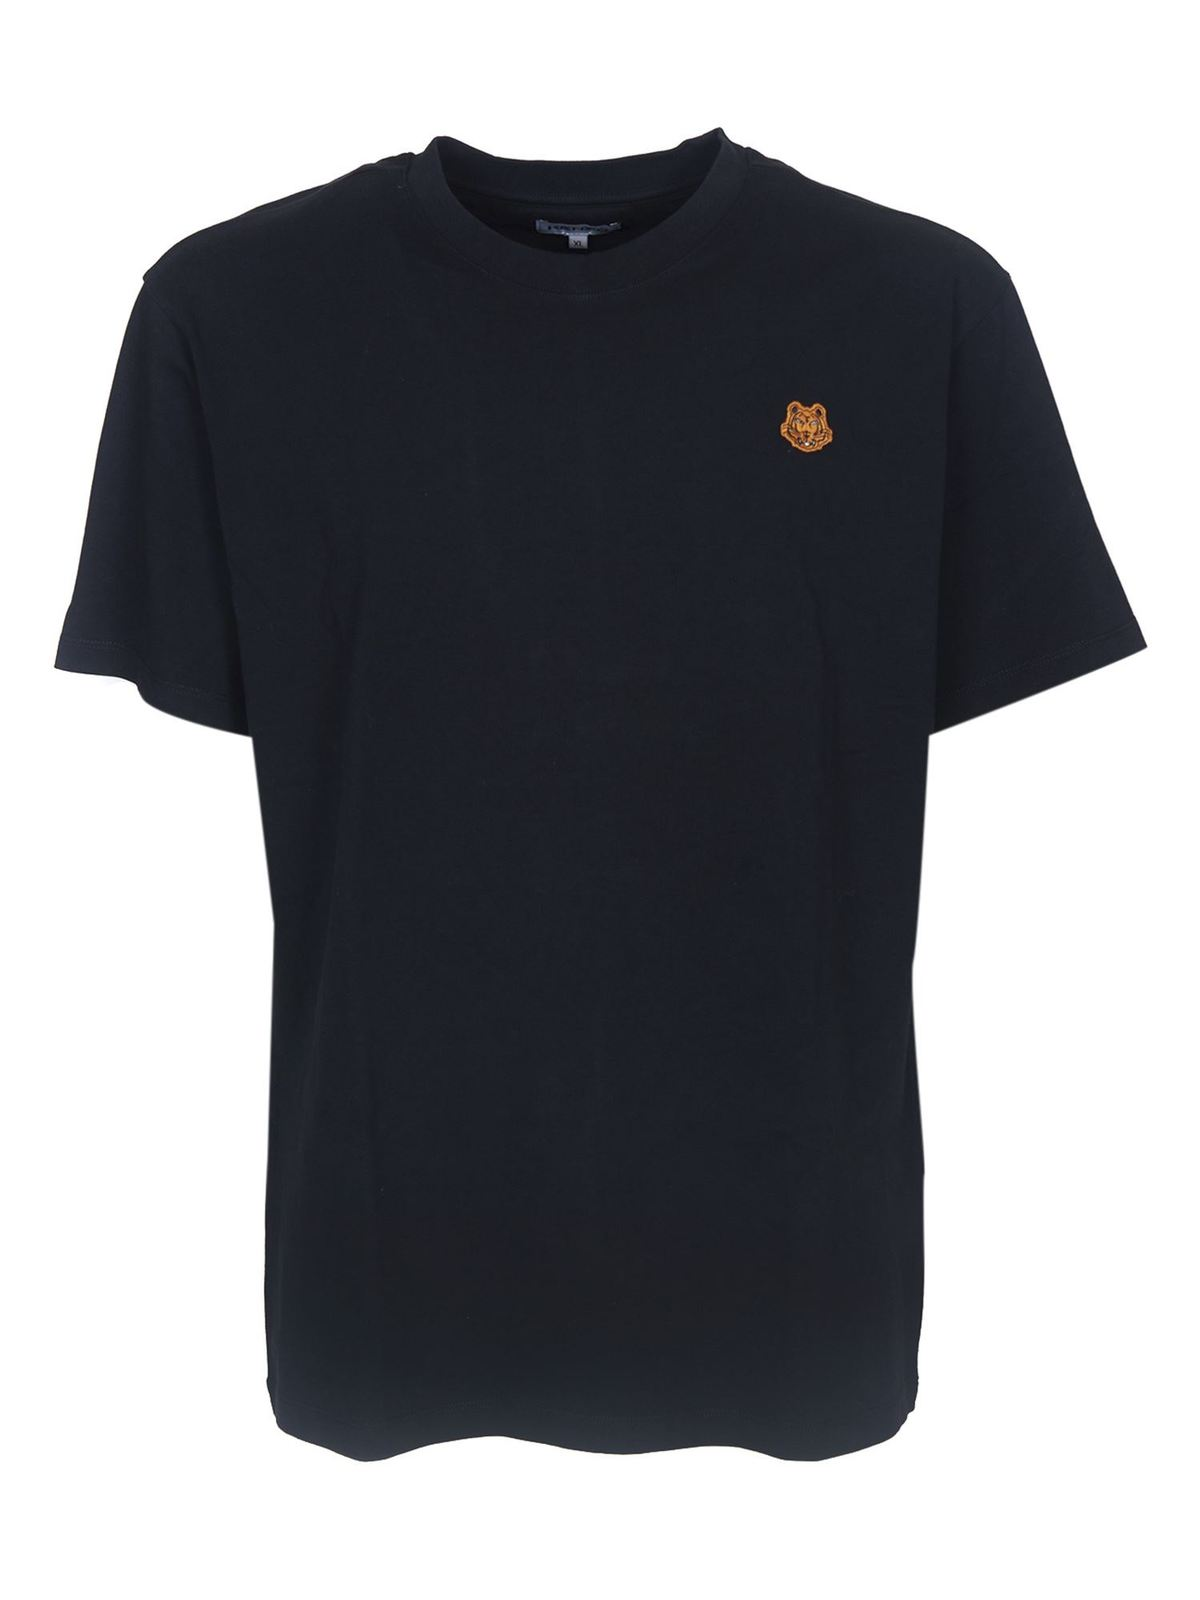 Kenzo TIGER CREST T-SHIRT IN BLACK